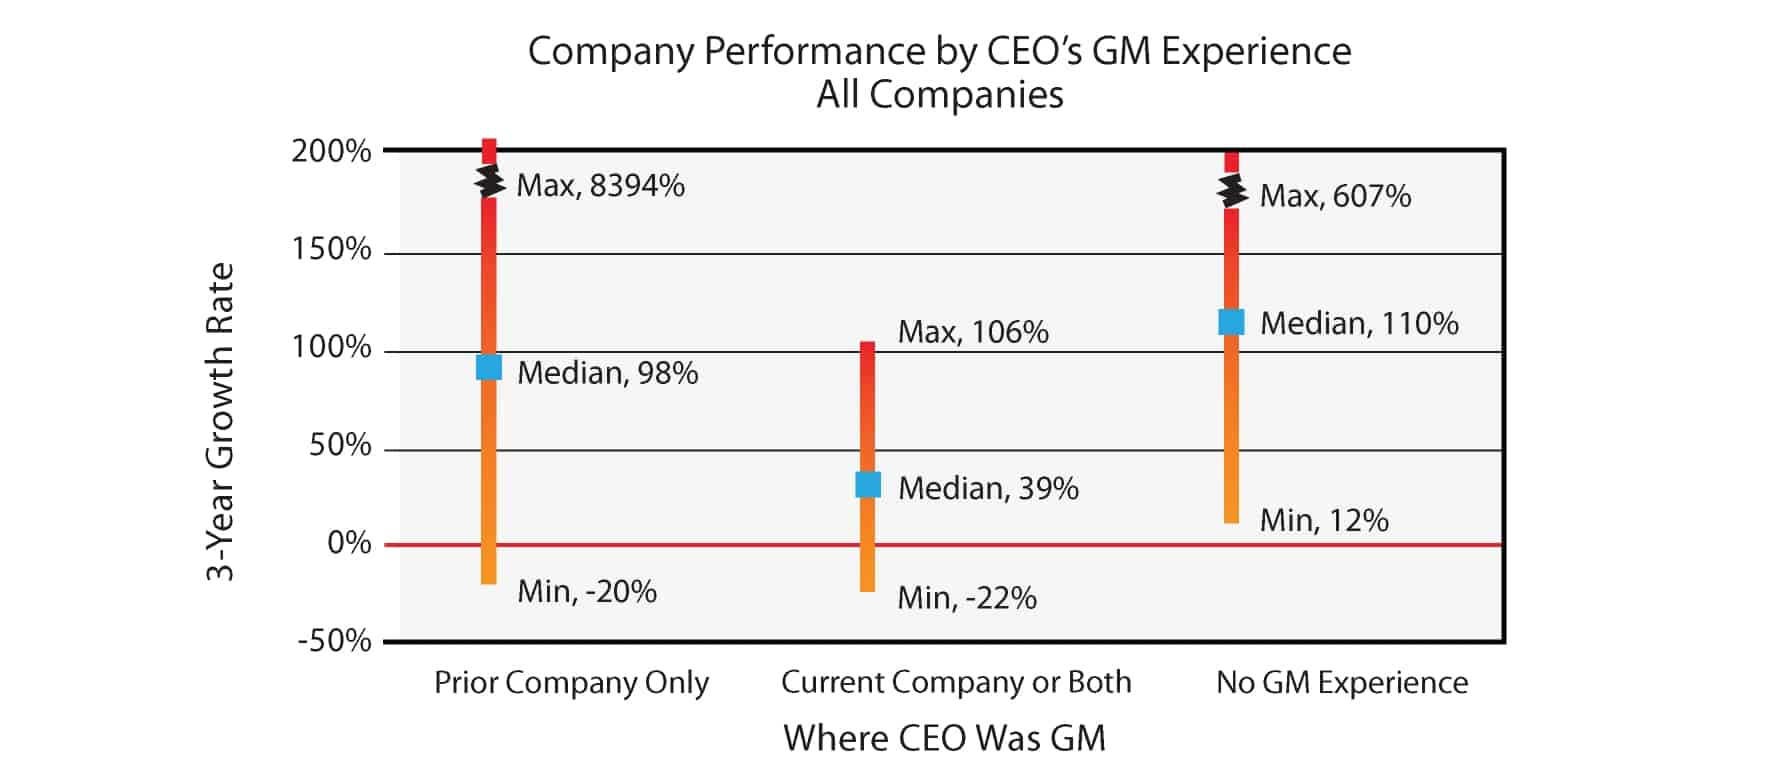 company performance by CEO GM's experience